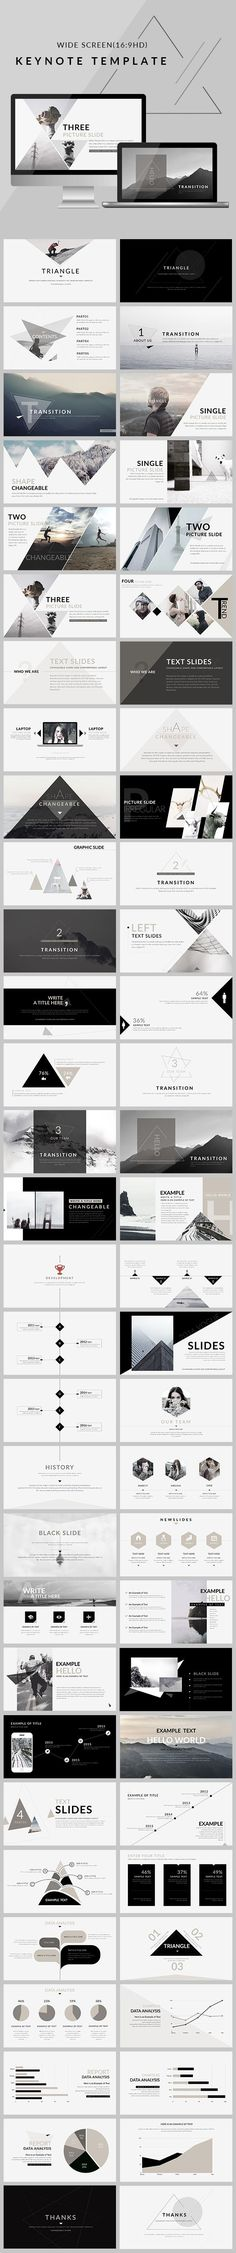 #網頁#簡報 Triangle - Clean trend Keynote Template